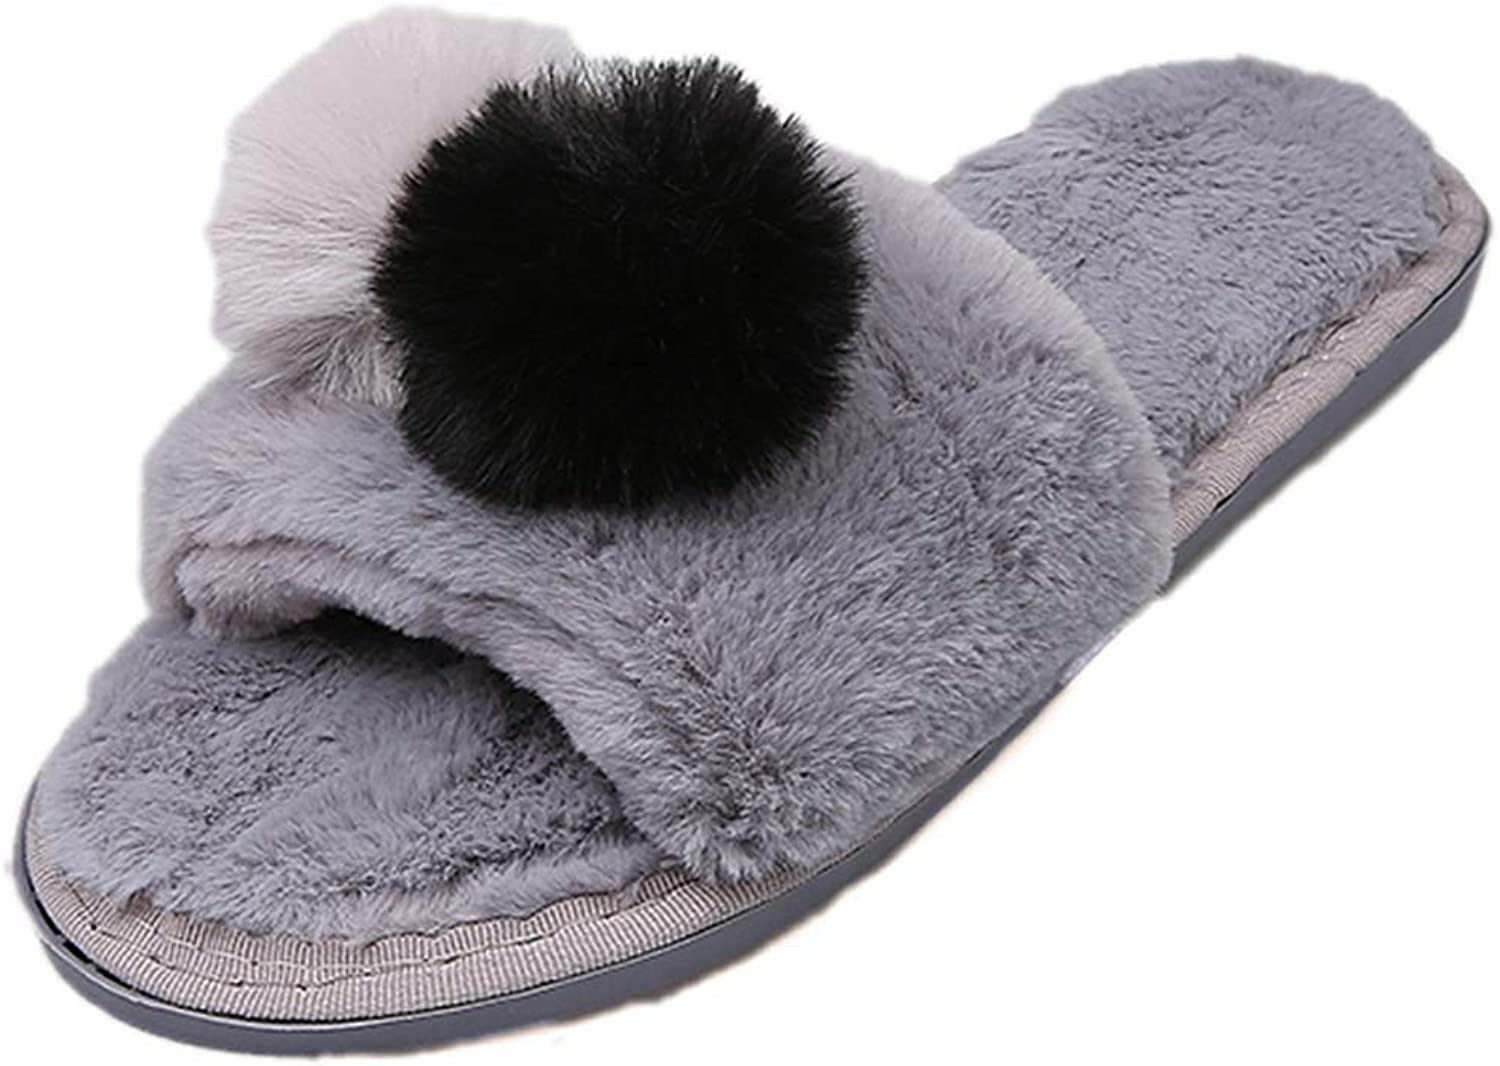 Nafanio Winter Slippers Women Flats shoes Soft Fur Thicken Home Plush Flip Flops Faux Fur Slides